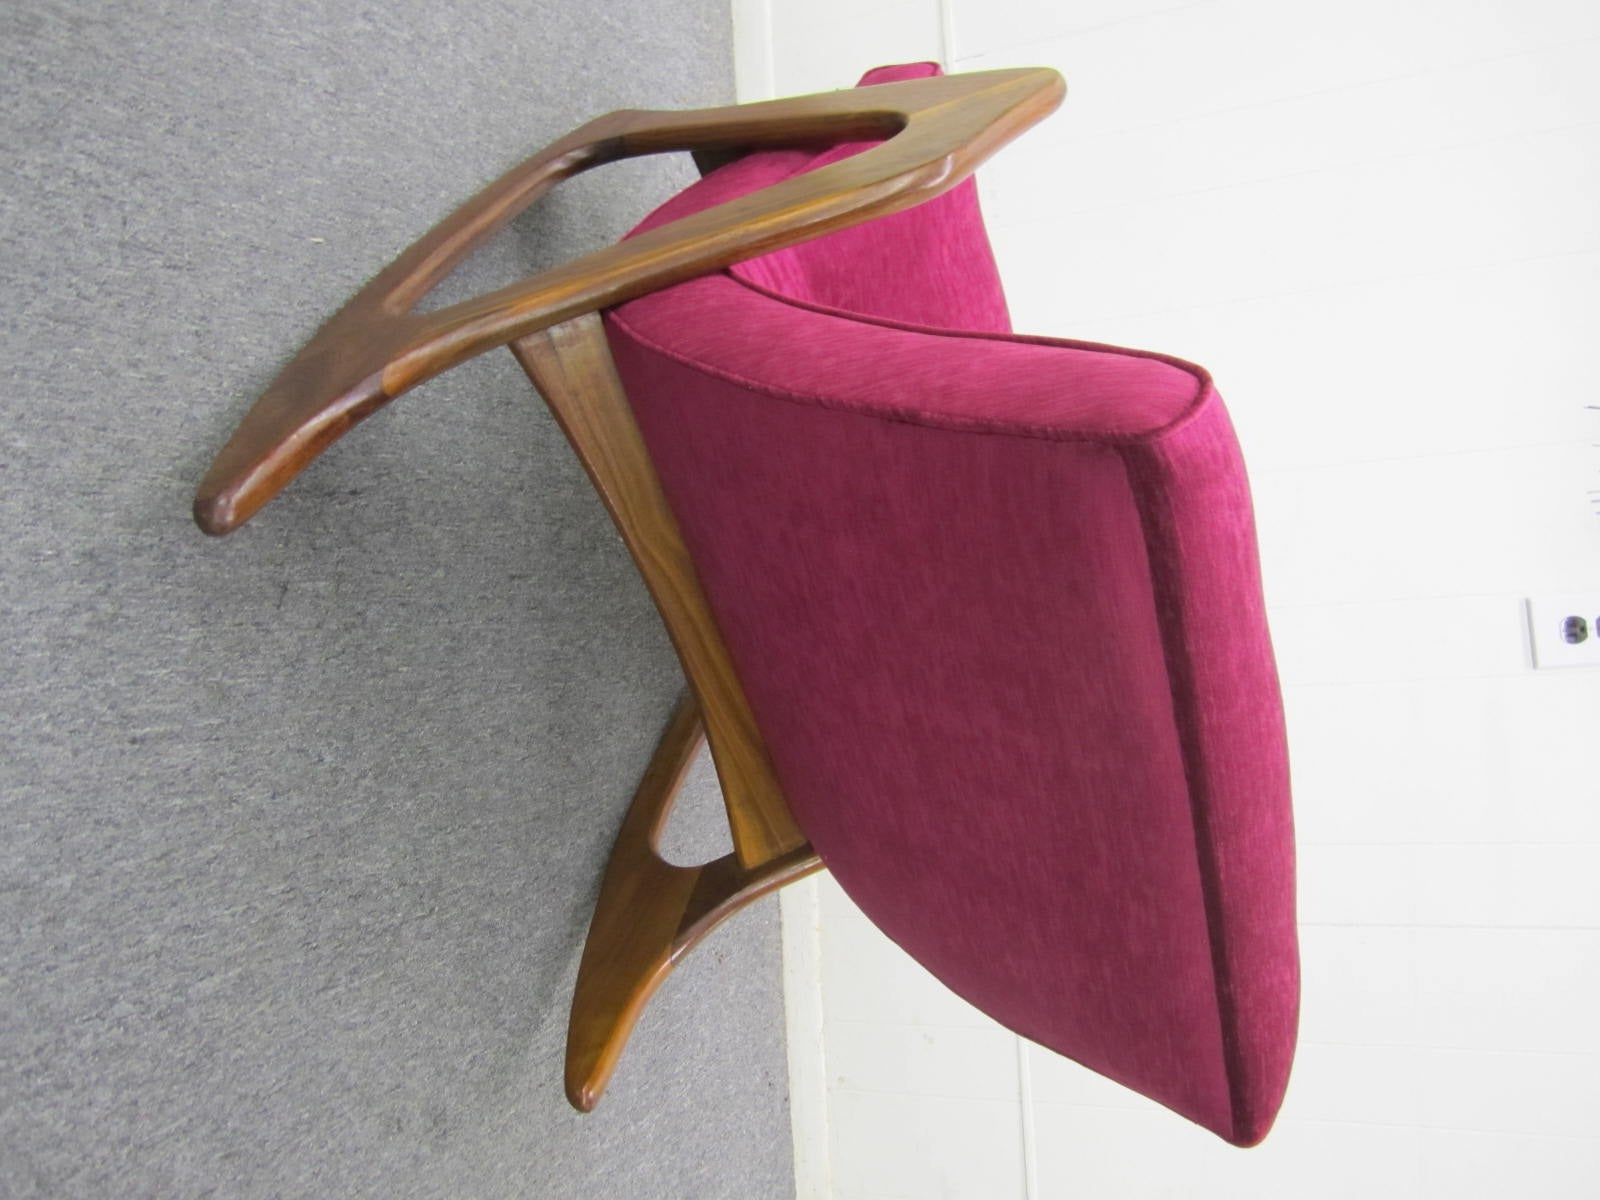 ... Rocking Chair for Craft Associates Mid-Century Modern For Sale at